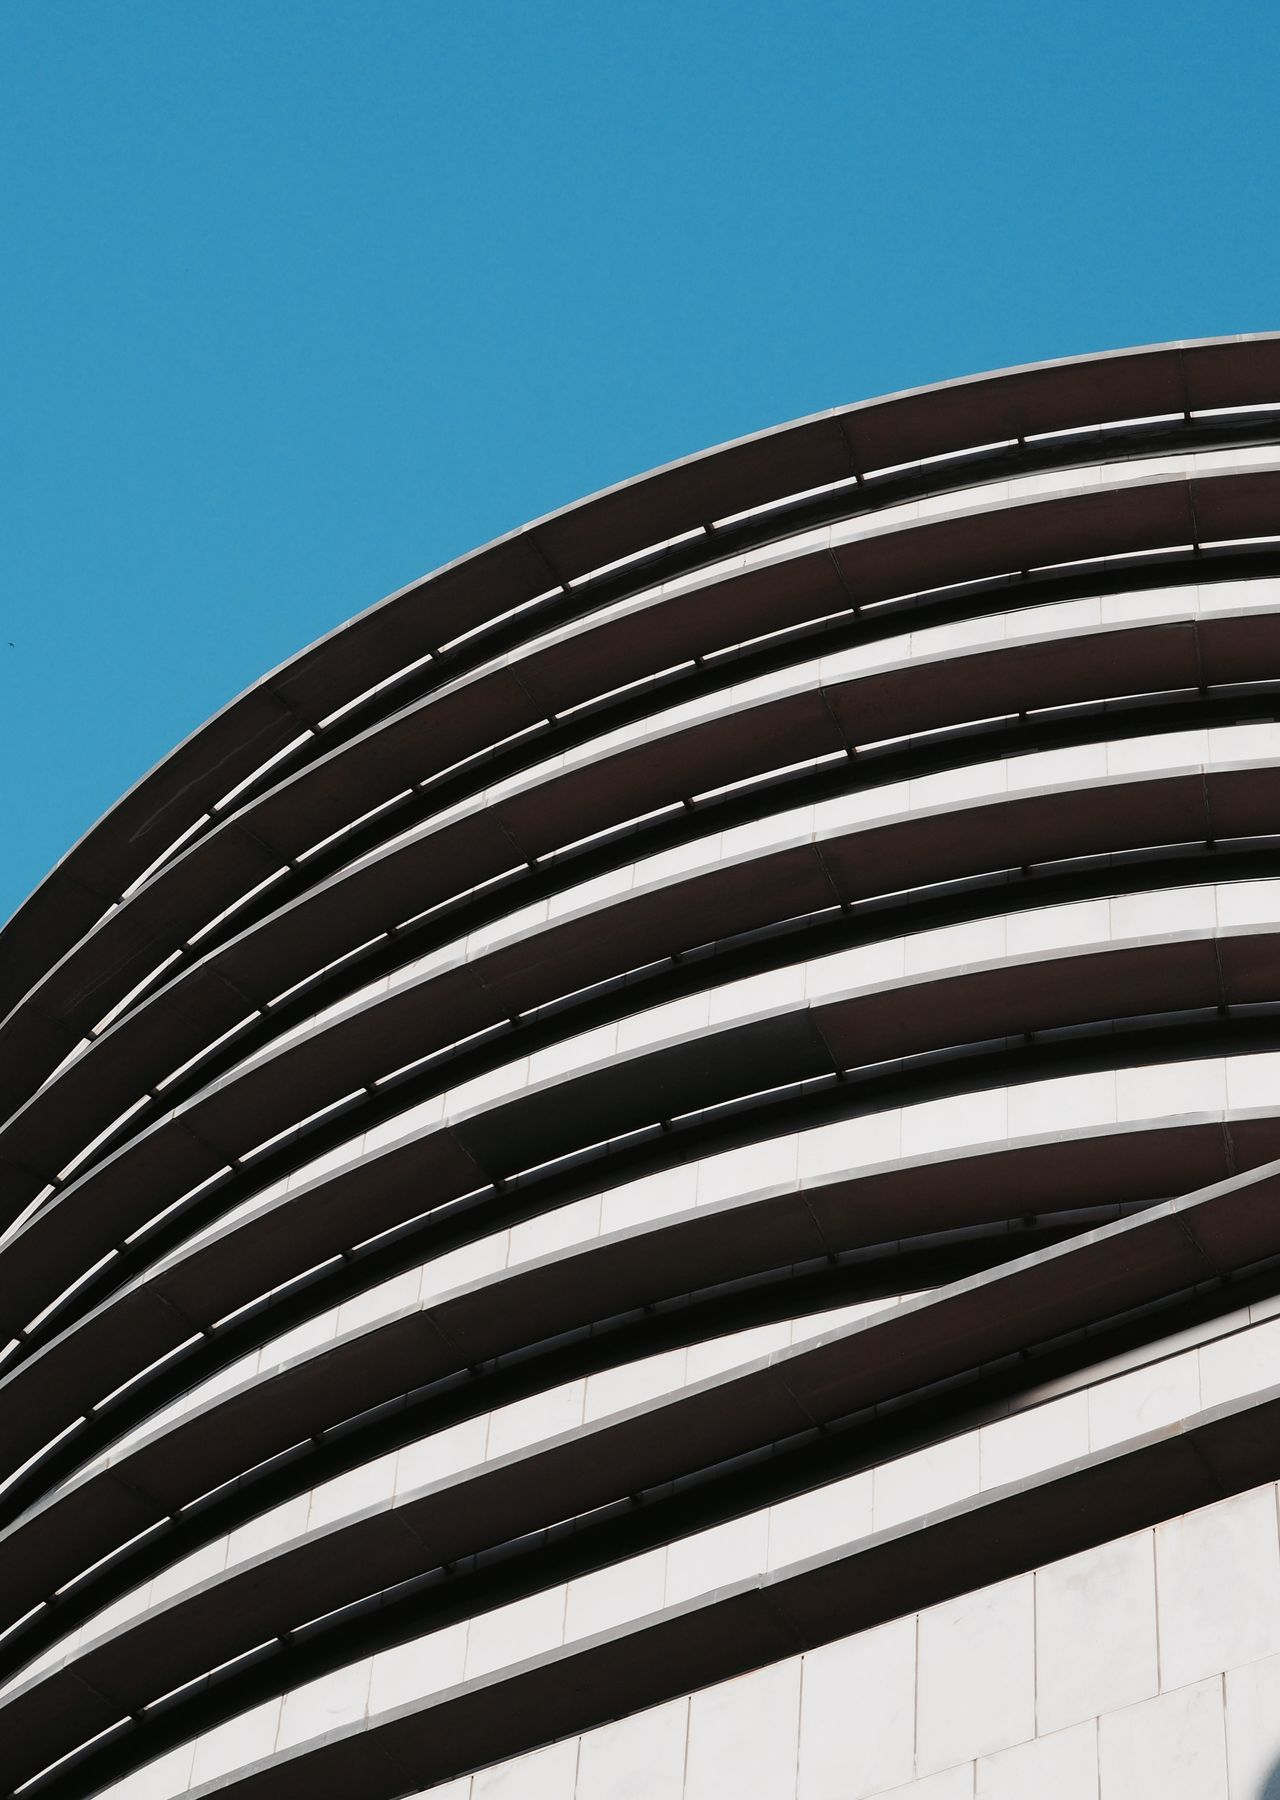 Architecture Blue Building Exterior Built Structure Clear Sky Close-up Day Low Angle View Modern No People Outdoors Sky